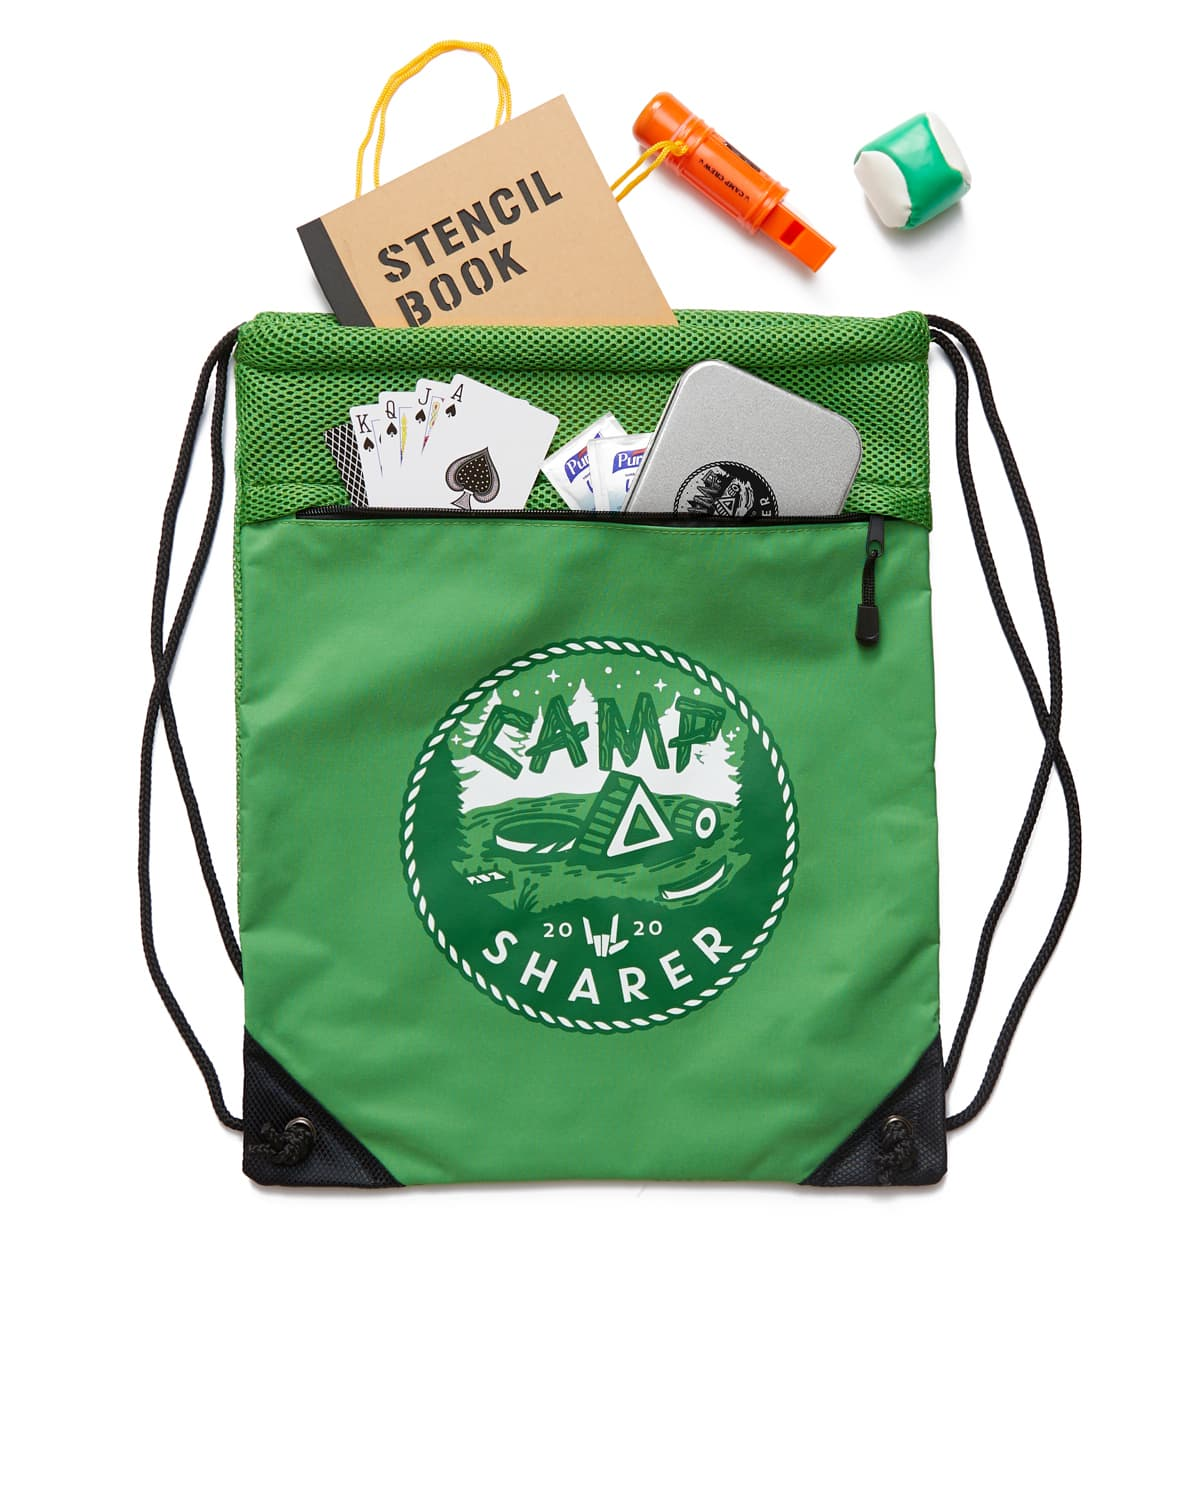 Camp Sharer Activity Pack